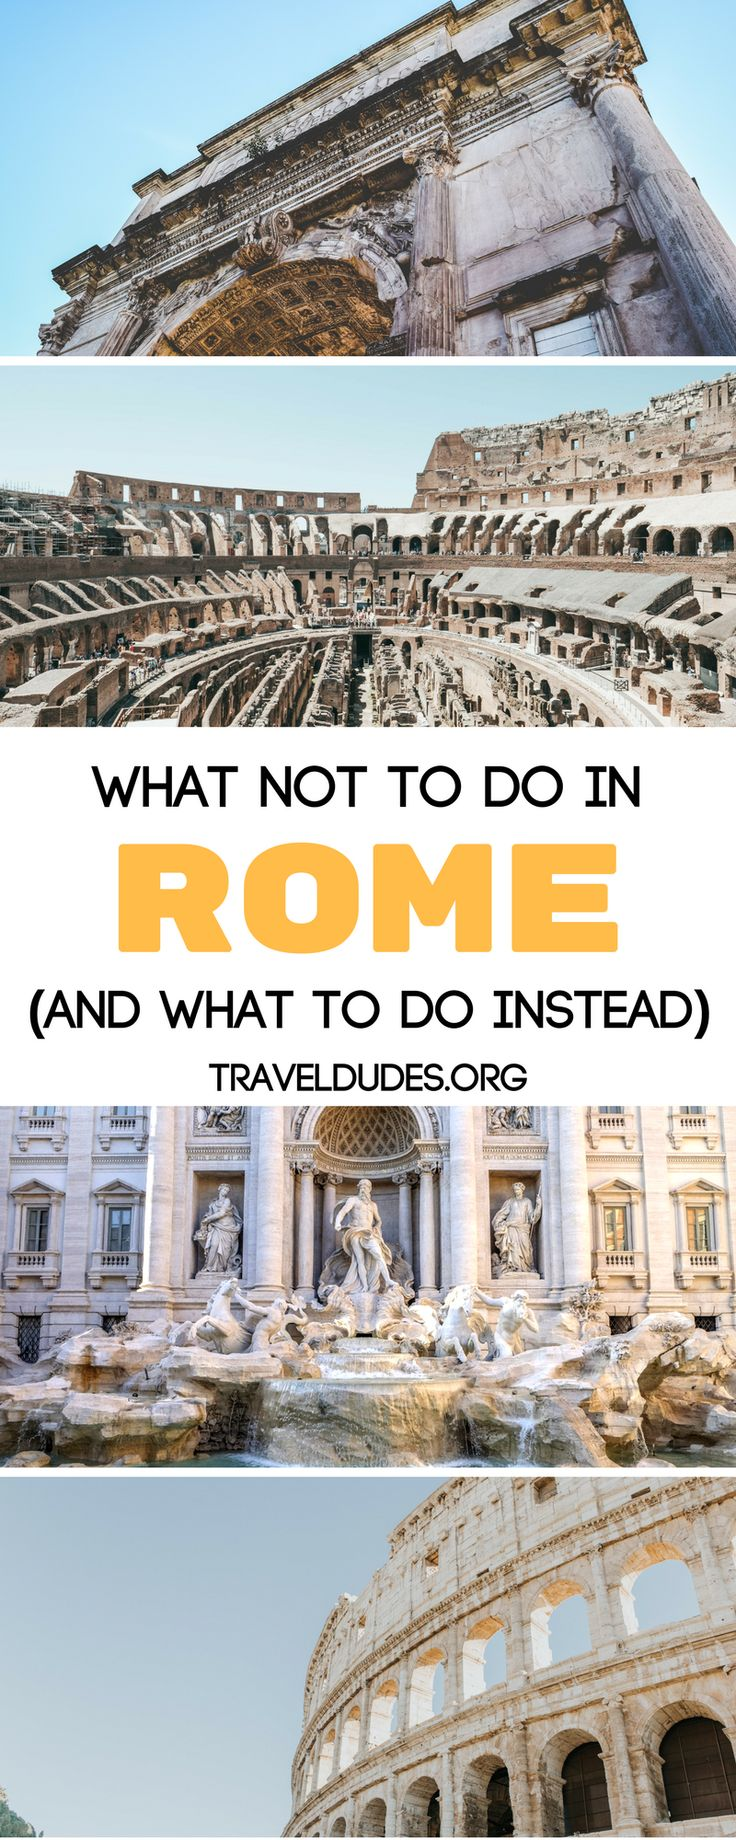 A guide of 10 things not to do as a tourist in Rome. Stay safe on the streets and don't accept anything from strangers. Learn how to visit the Vatican for free and how to avoid expensive tourist menus and eat authentic Italian food. These tips will keep you safe while in Rome. and provide you with an authentic travel experience. Travel in Italy. | Travel Dudes Travel Community #Rome #Italy